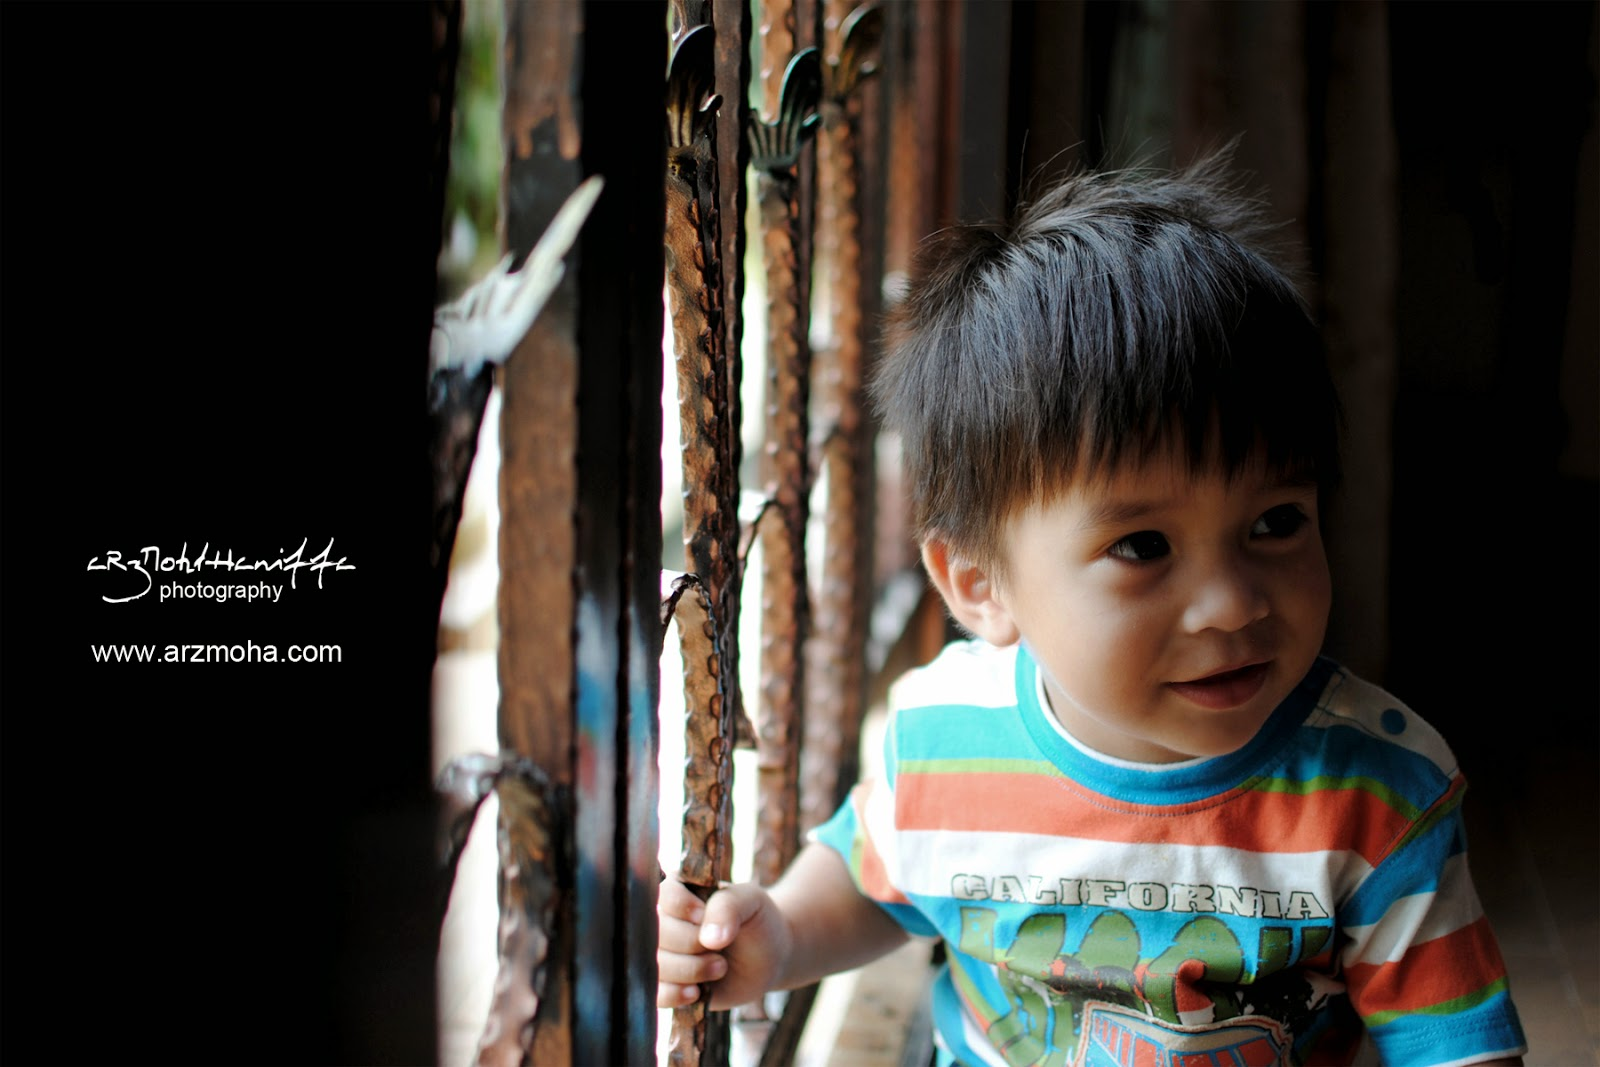 Kids, kanak-kanak, boy, kids world, gambar cantik, kids photography